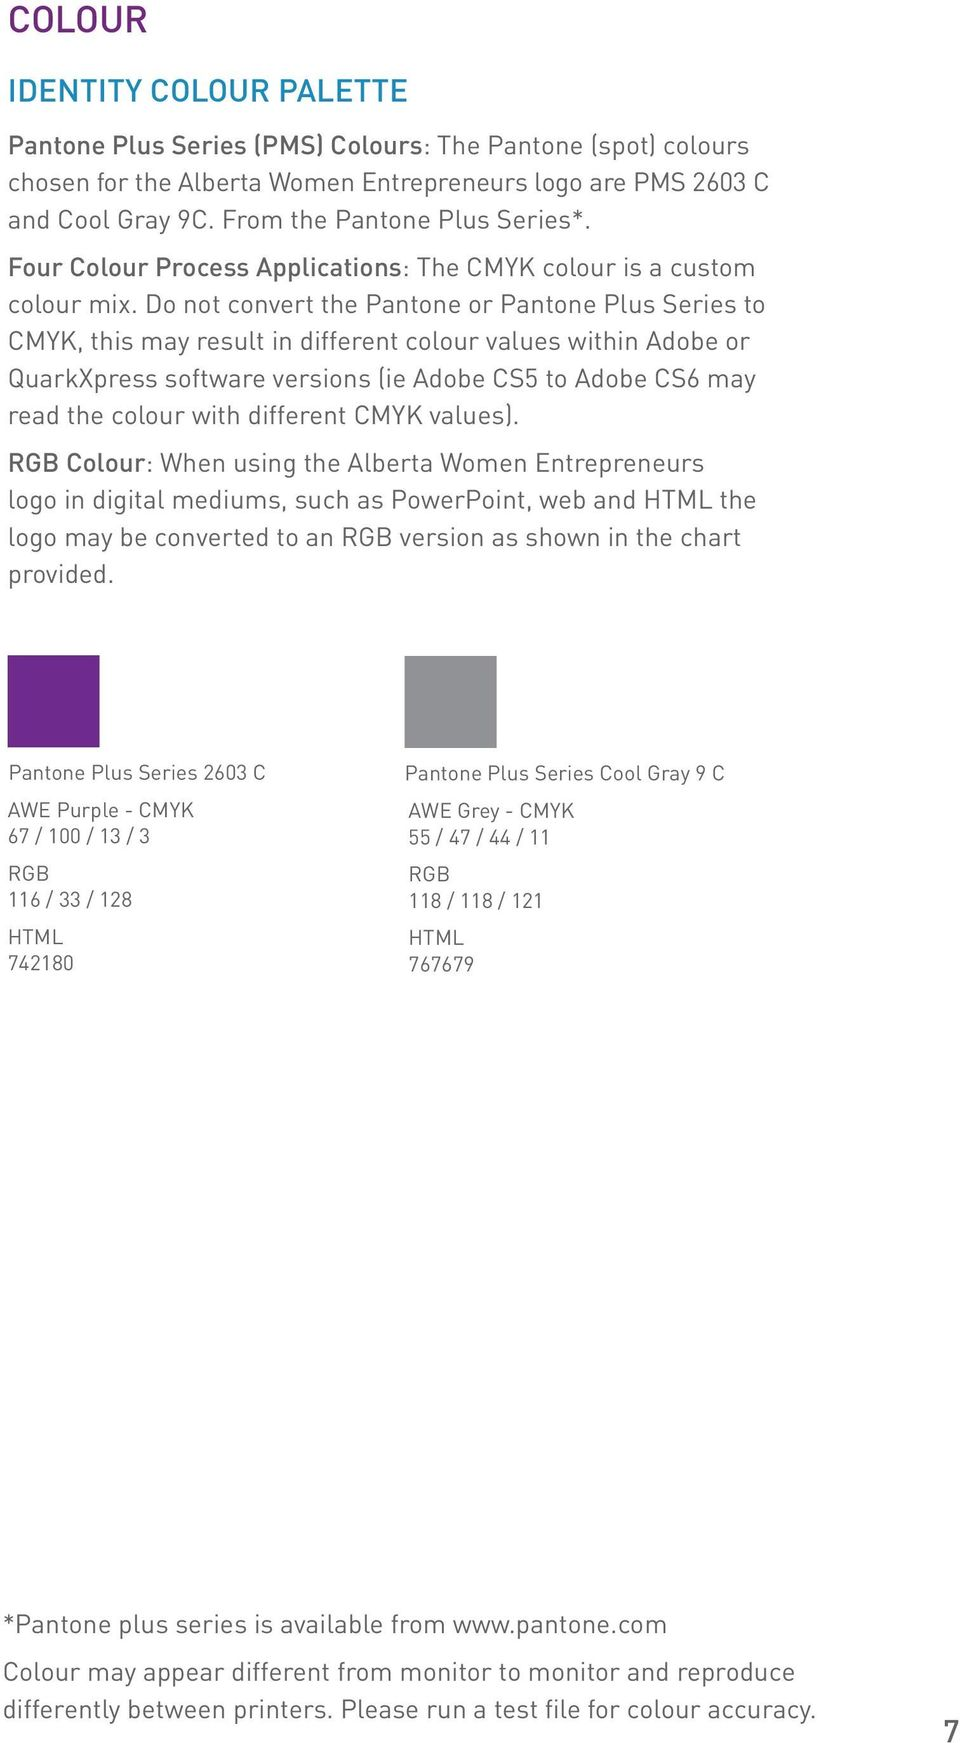 Do not convert the Pantone or Pantone Plus Series to CMYK, this may result in different colour values within Adobe or QuarkXpress software versions (ie Adobe CS5 to Adobe CS6 may read the colour with